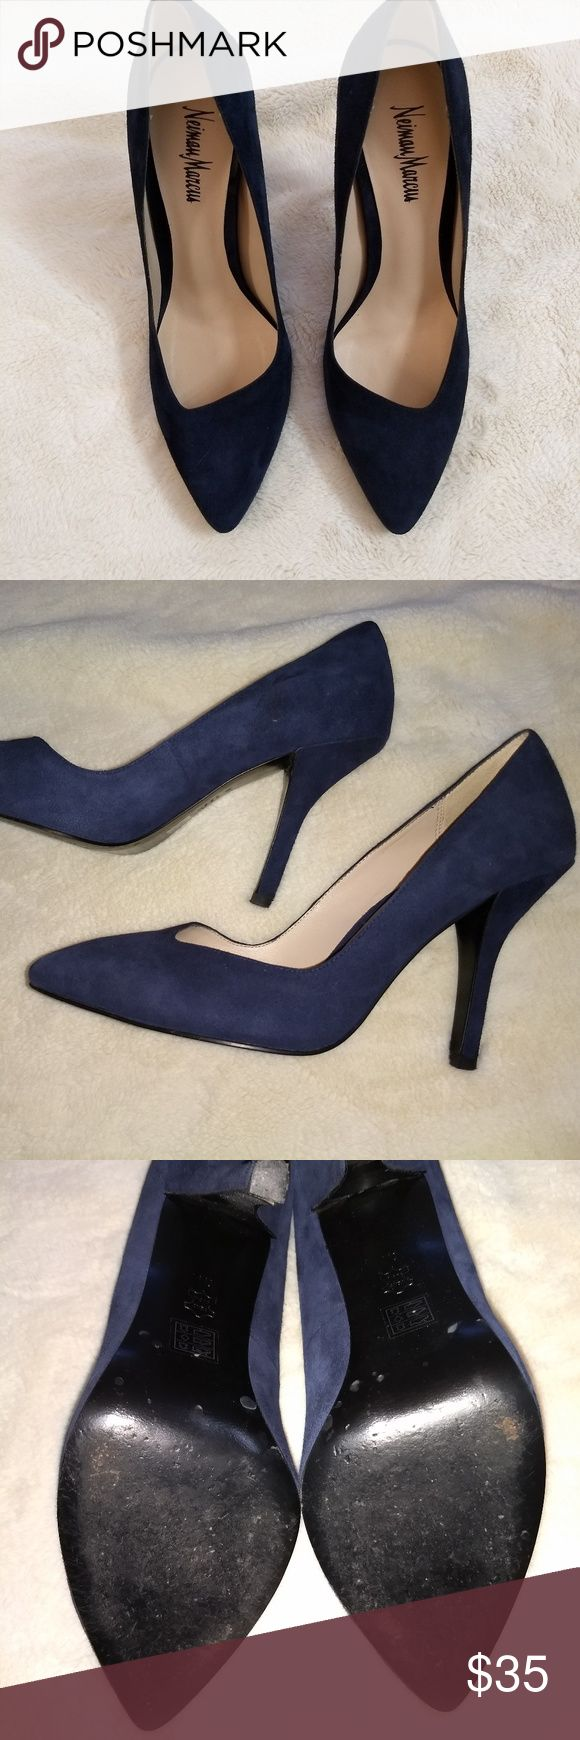 Neiman Marcus Blue Suede Pumps EUC - Worn only 4-5 times, showing only minimal signs of wear. Gorgeous dark blue suede pump with 3.25 inch heel. Very comfortable and have 'Vero Cuoio' stamp on bottom (which signifies the shoe is made of high quality Italian leather). Neiman Marcus Shoes Heels